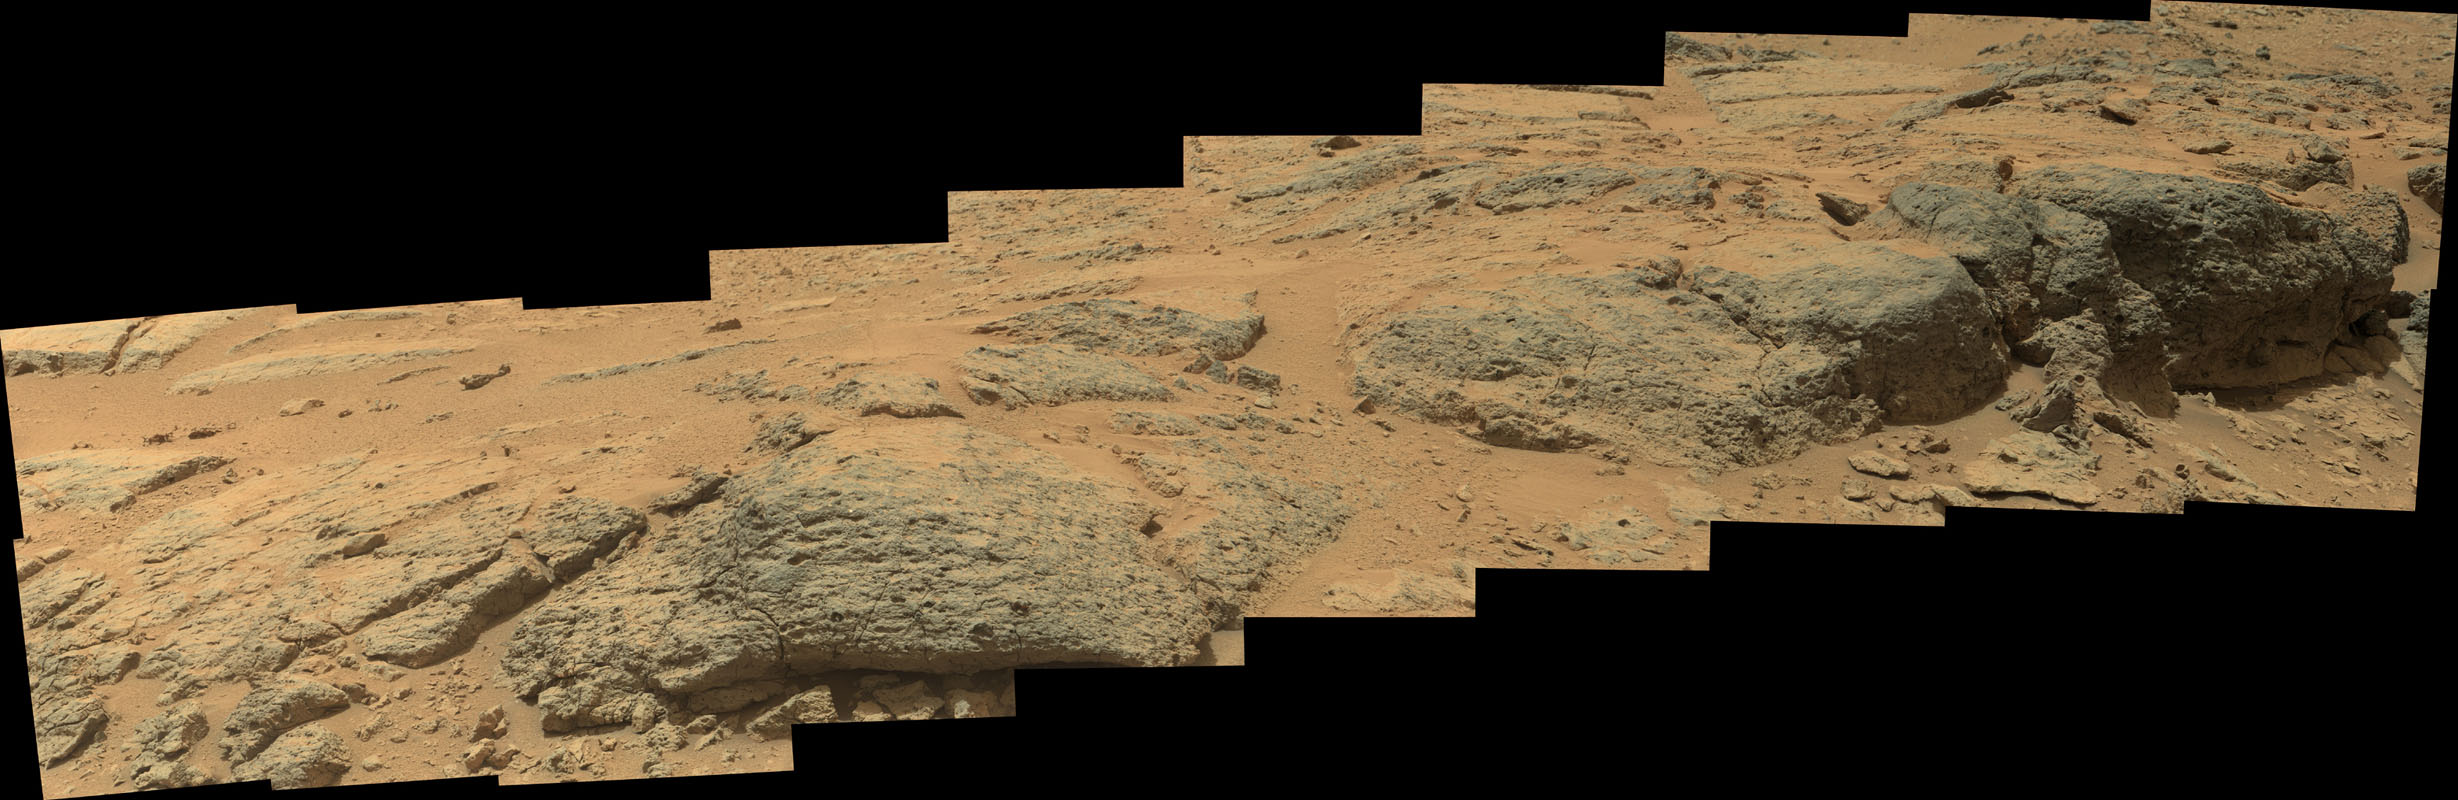 This mosaic view from the Mast Camera (Mastcam) on NASA's Mars rover Curiosity shows textural characteristics and shapes of an outcrop called 'Point Lake.' The outcrop is about 20 inches (half a meter) high and pockmarked with holes.